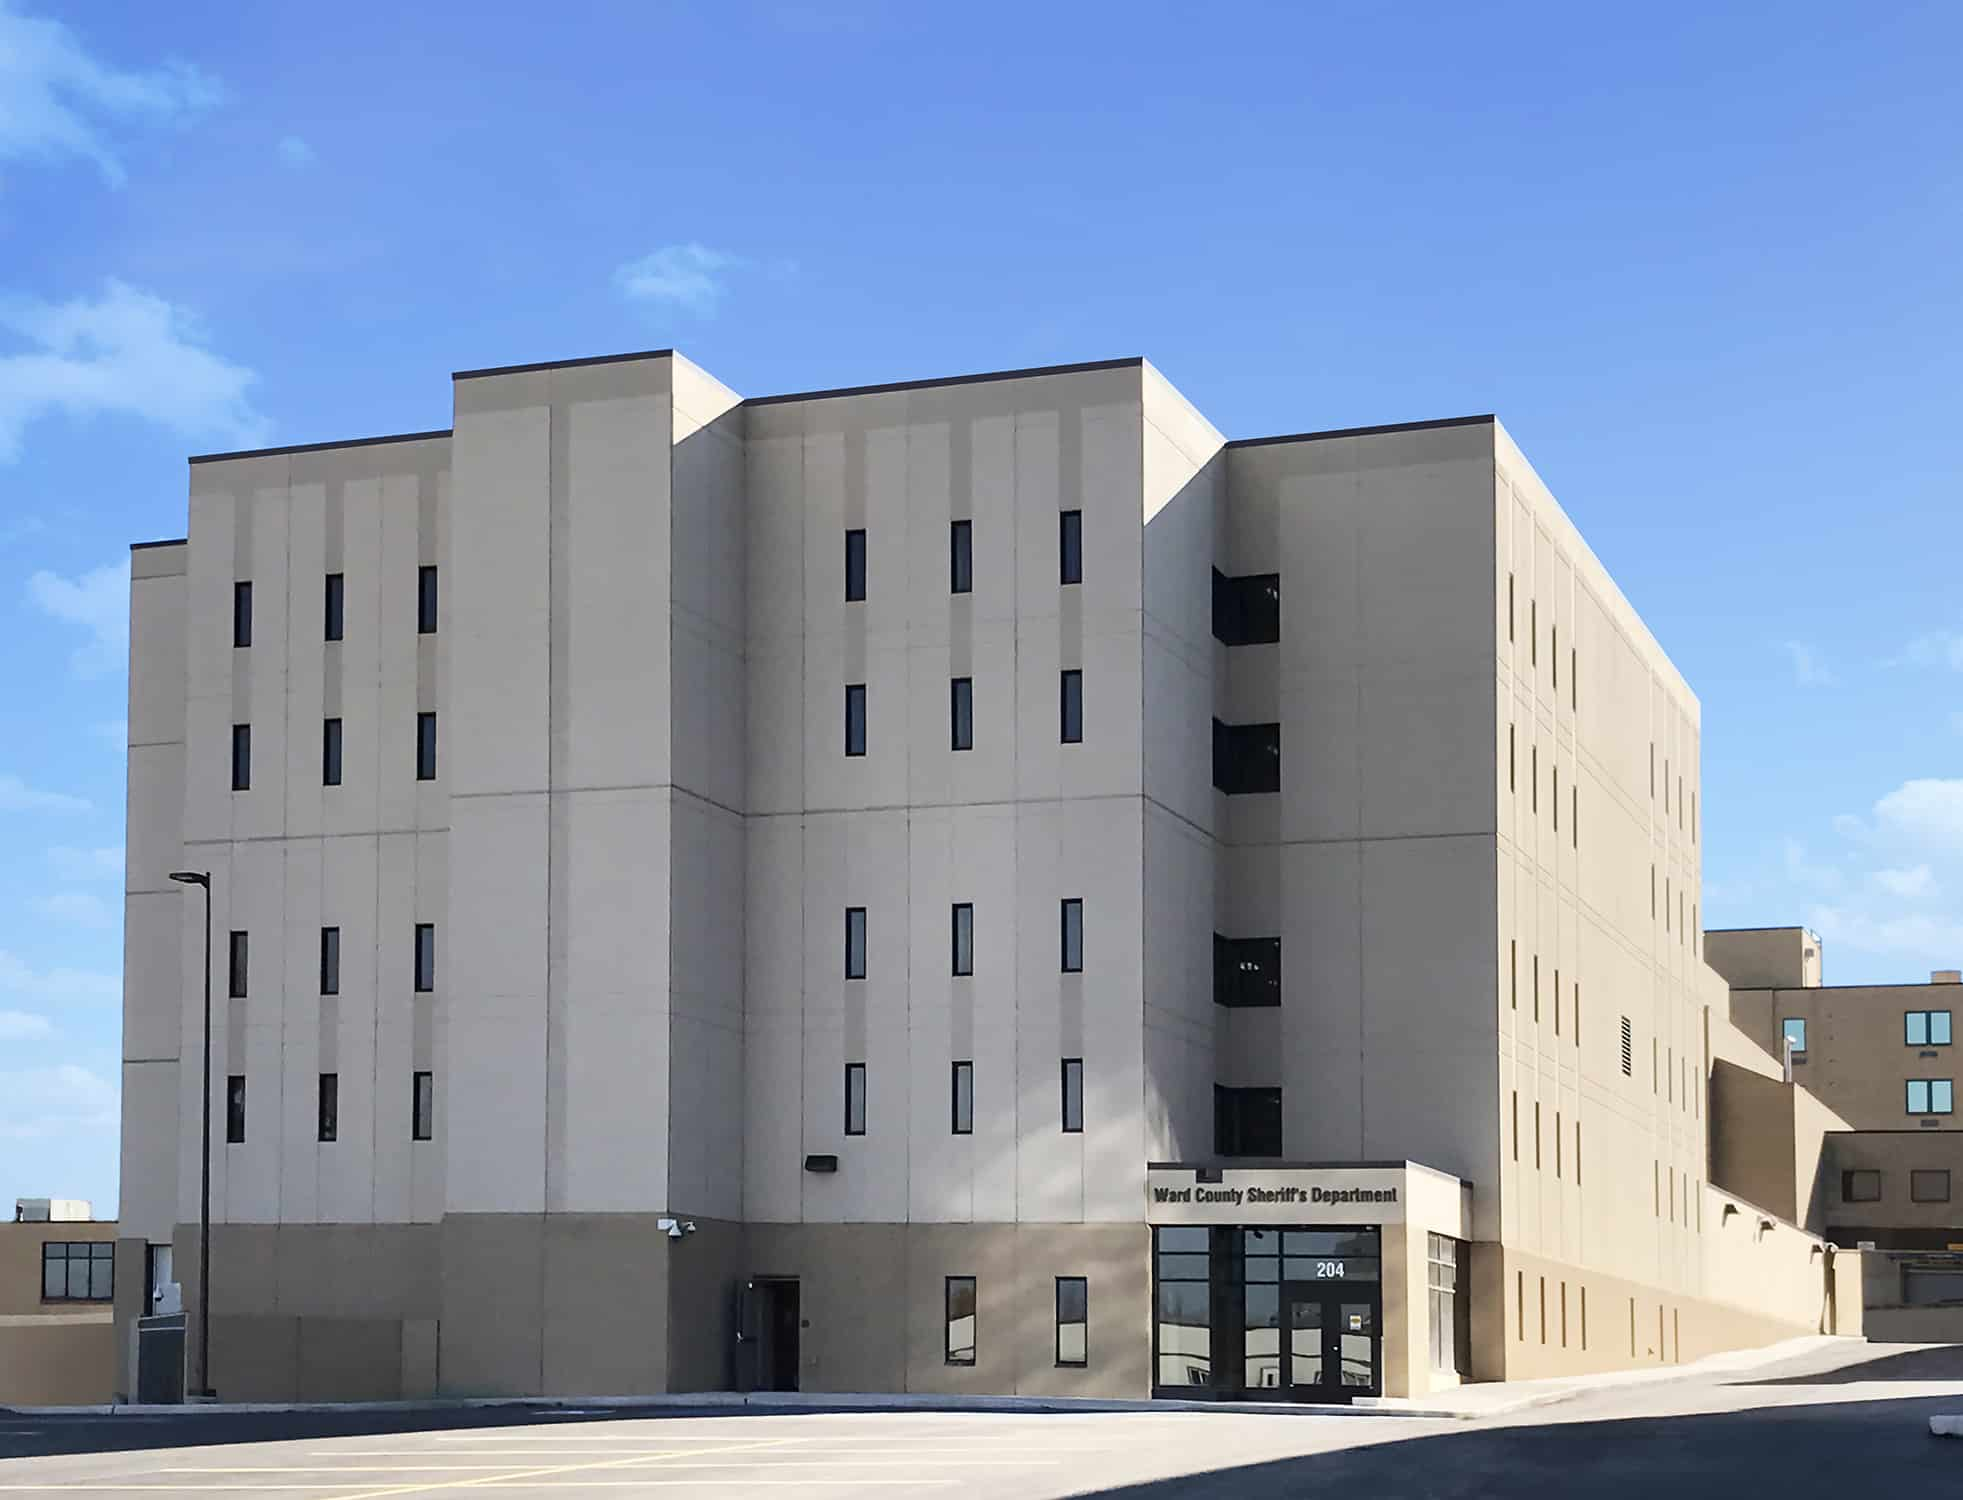 Exterior view of the Ward County Jail addition and entry.